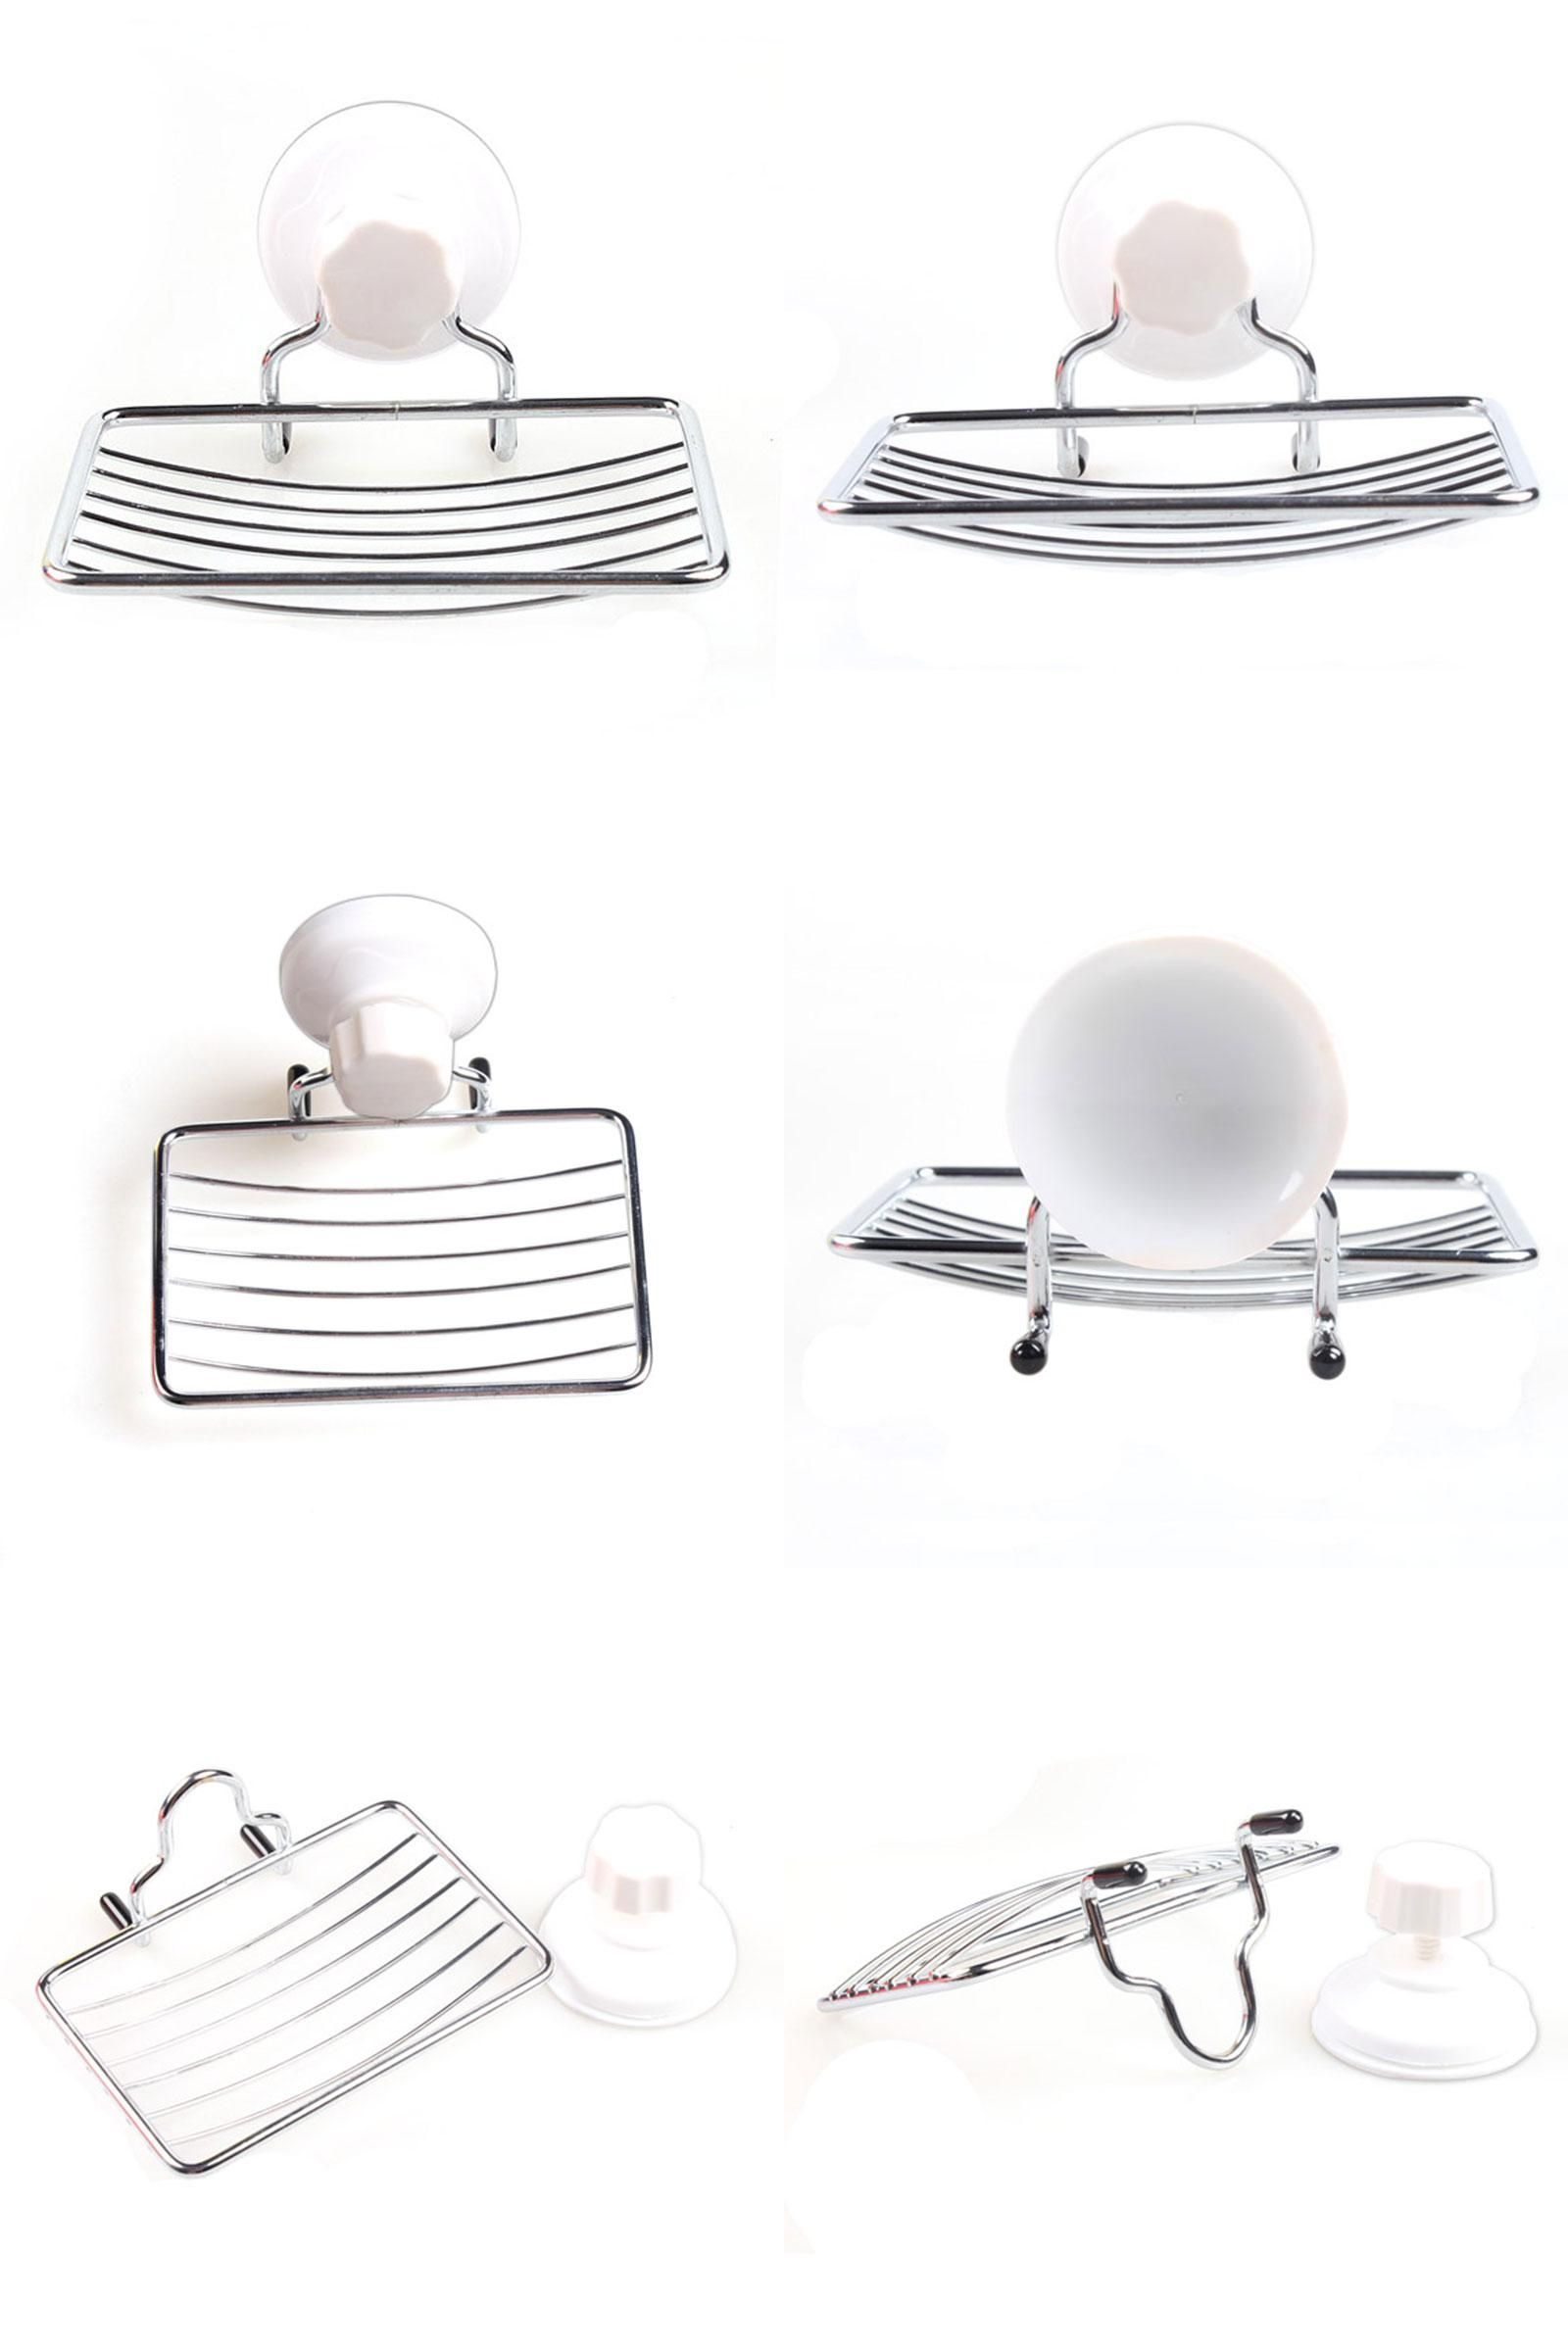 Bathroom Accessories With Suction Cups visit to buy] suction cup soap holder plastic and metal soap dish